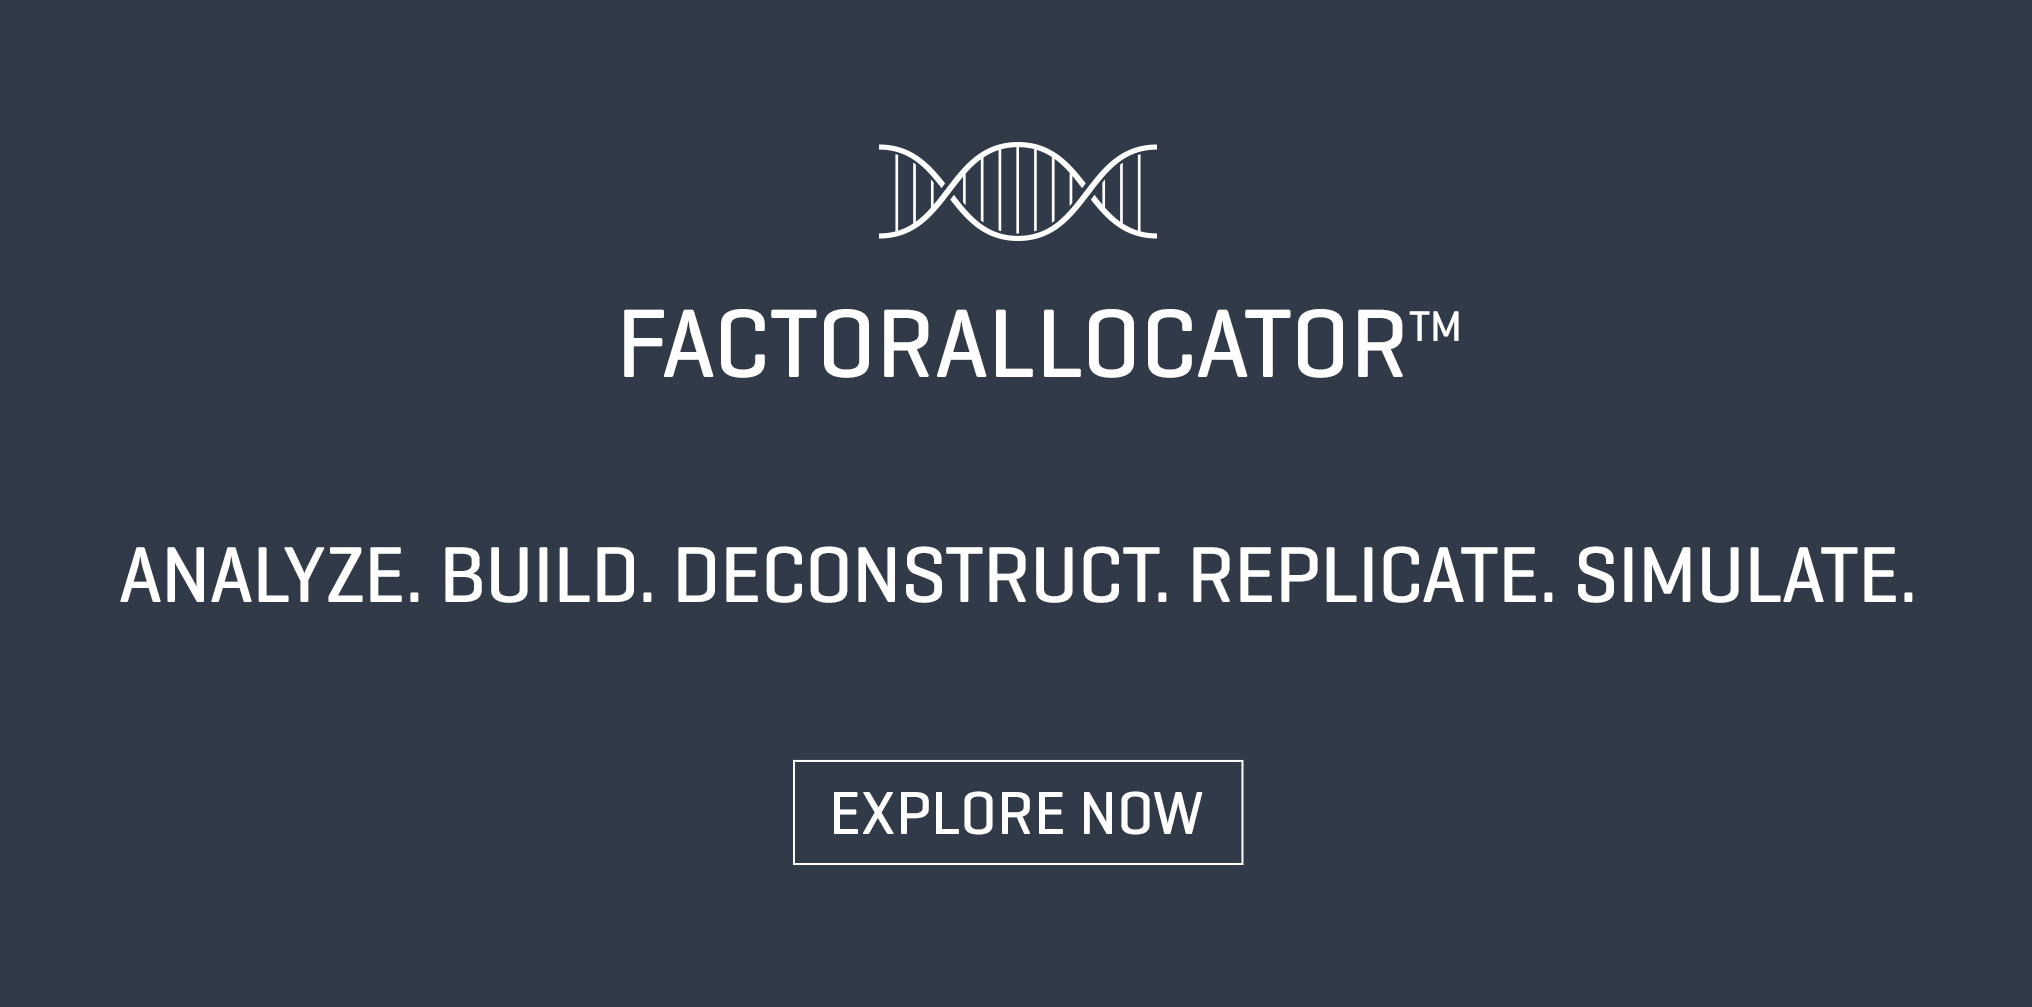 Discover the FactorAllocator<sup>TM</sup> Tool